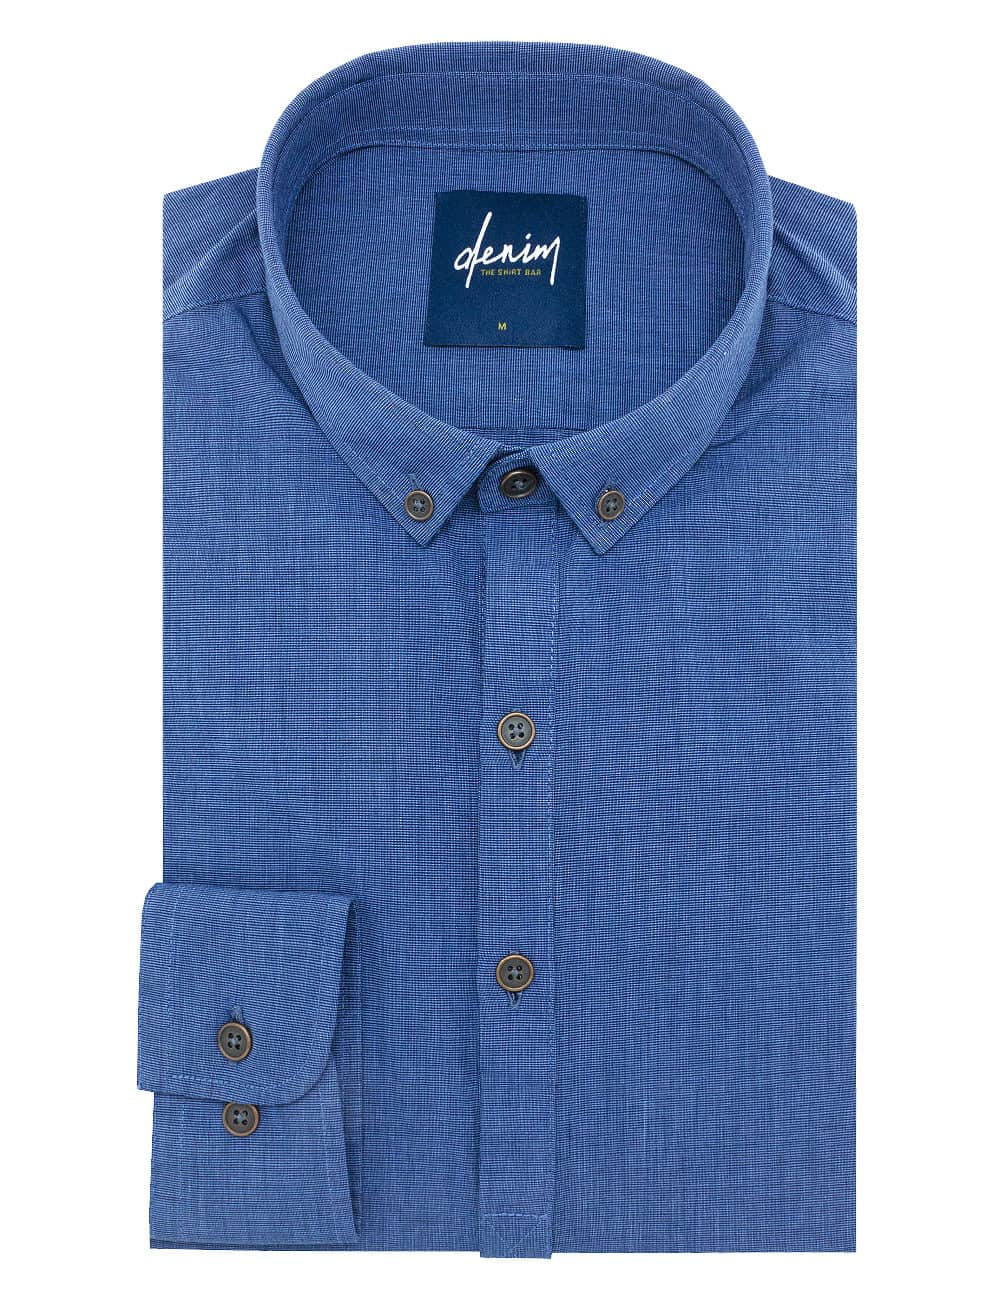 Relaxed Fit Solid Navy Fil A Fil Button Down Denim Collection 100% Cotton Long Sleeve Single Cuff Shirt RF6BA1.7